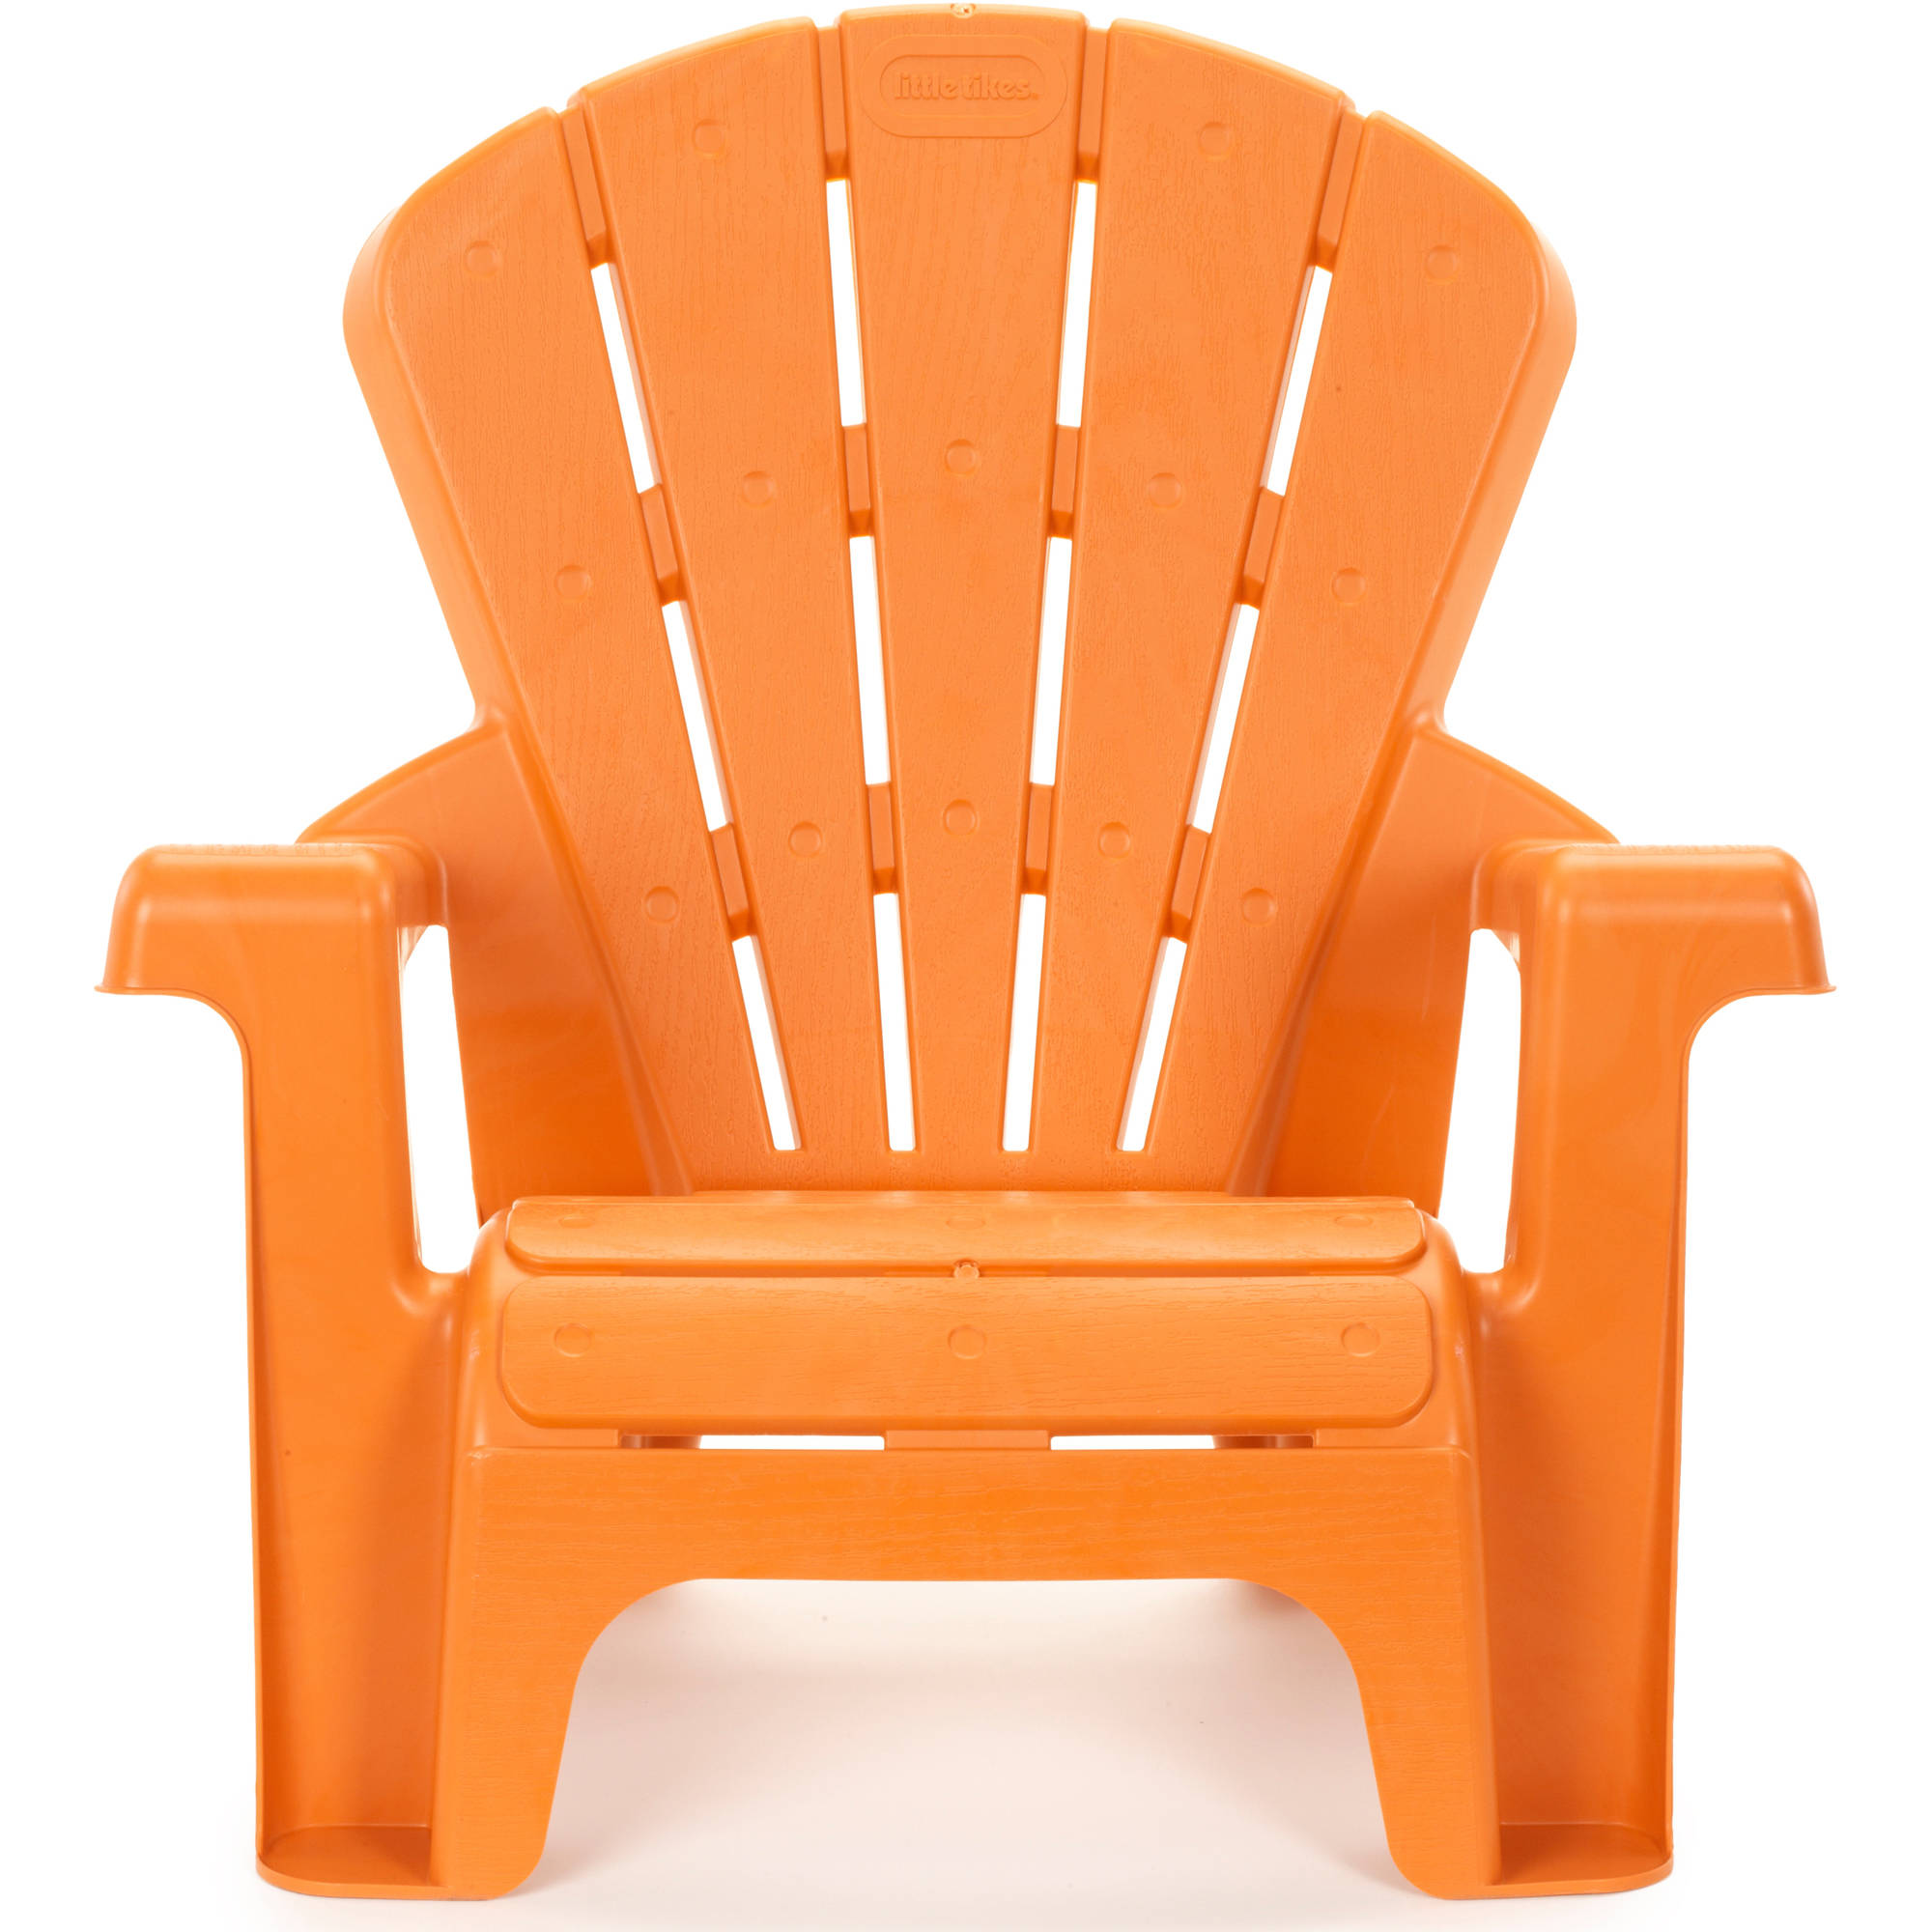 Little Tikes Garden Chair Orange Walmart